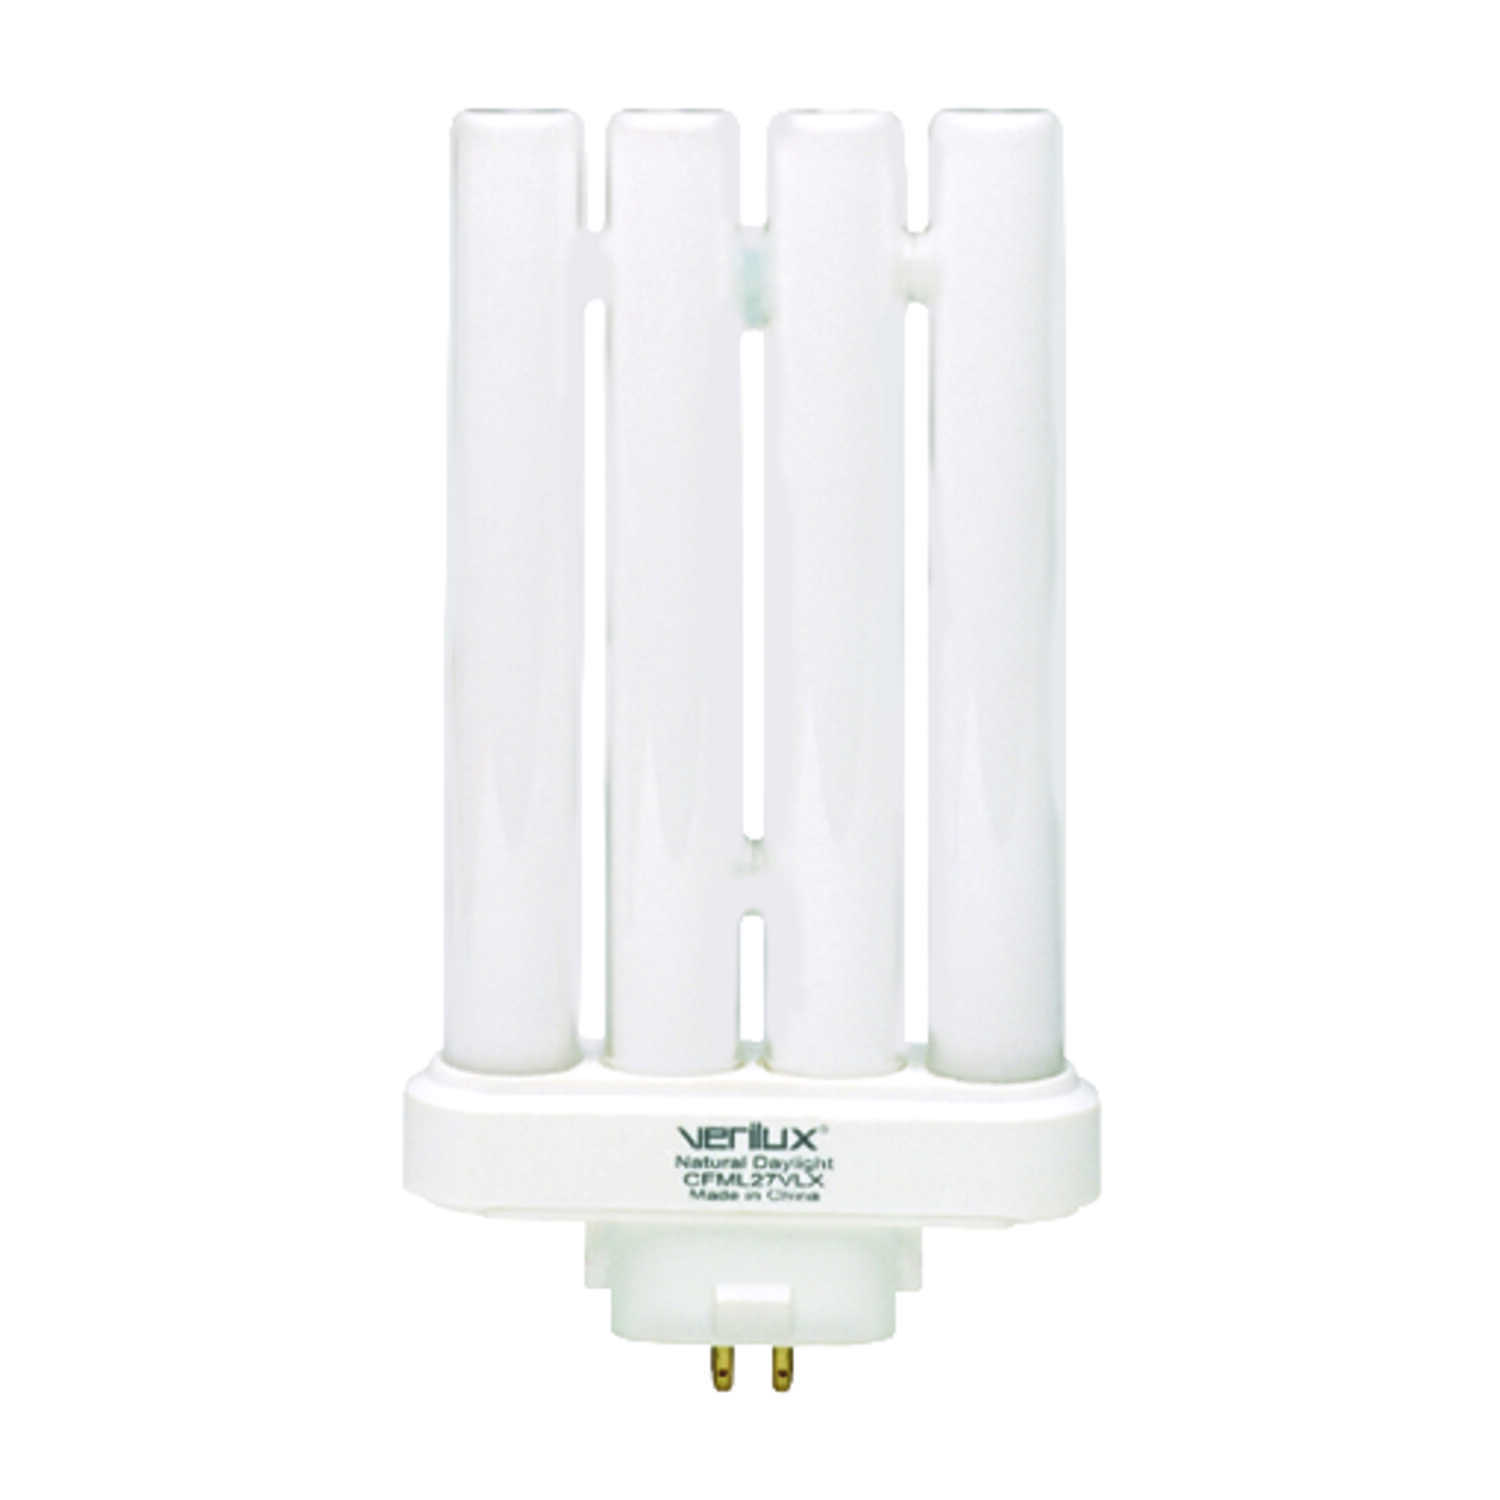 Verilux  Natural Spectrum  27 watts T5  6 in. Natural Light  Replacement Bulb  Compact  1 pk 1715 lu